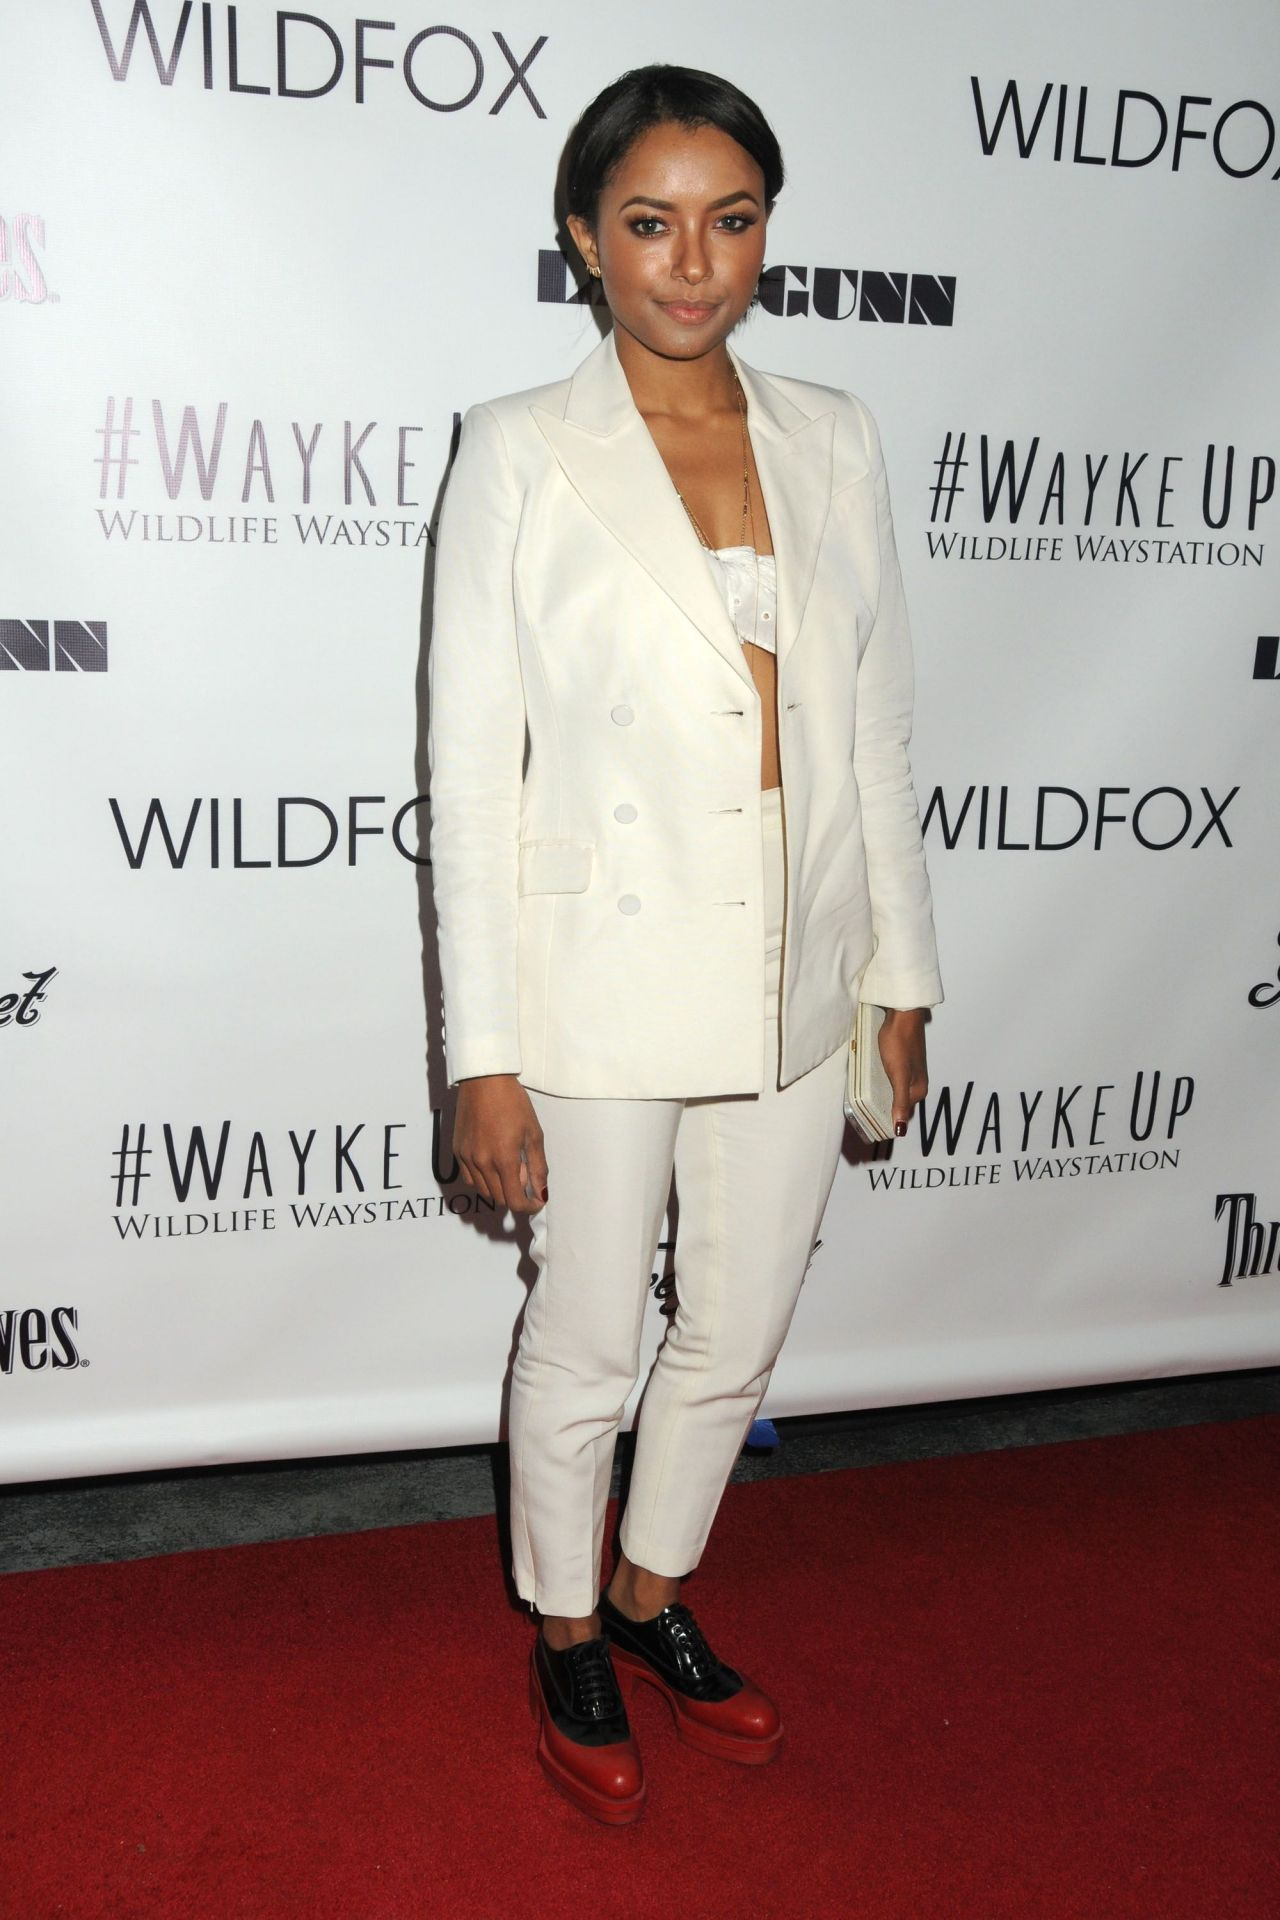 kat-graham-wayke-up-fundraiser-2014-in-west-hollywood_1